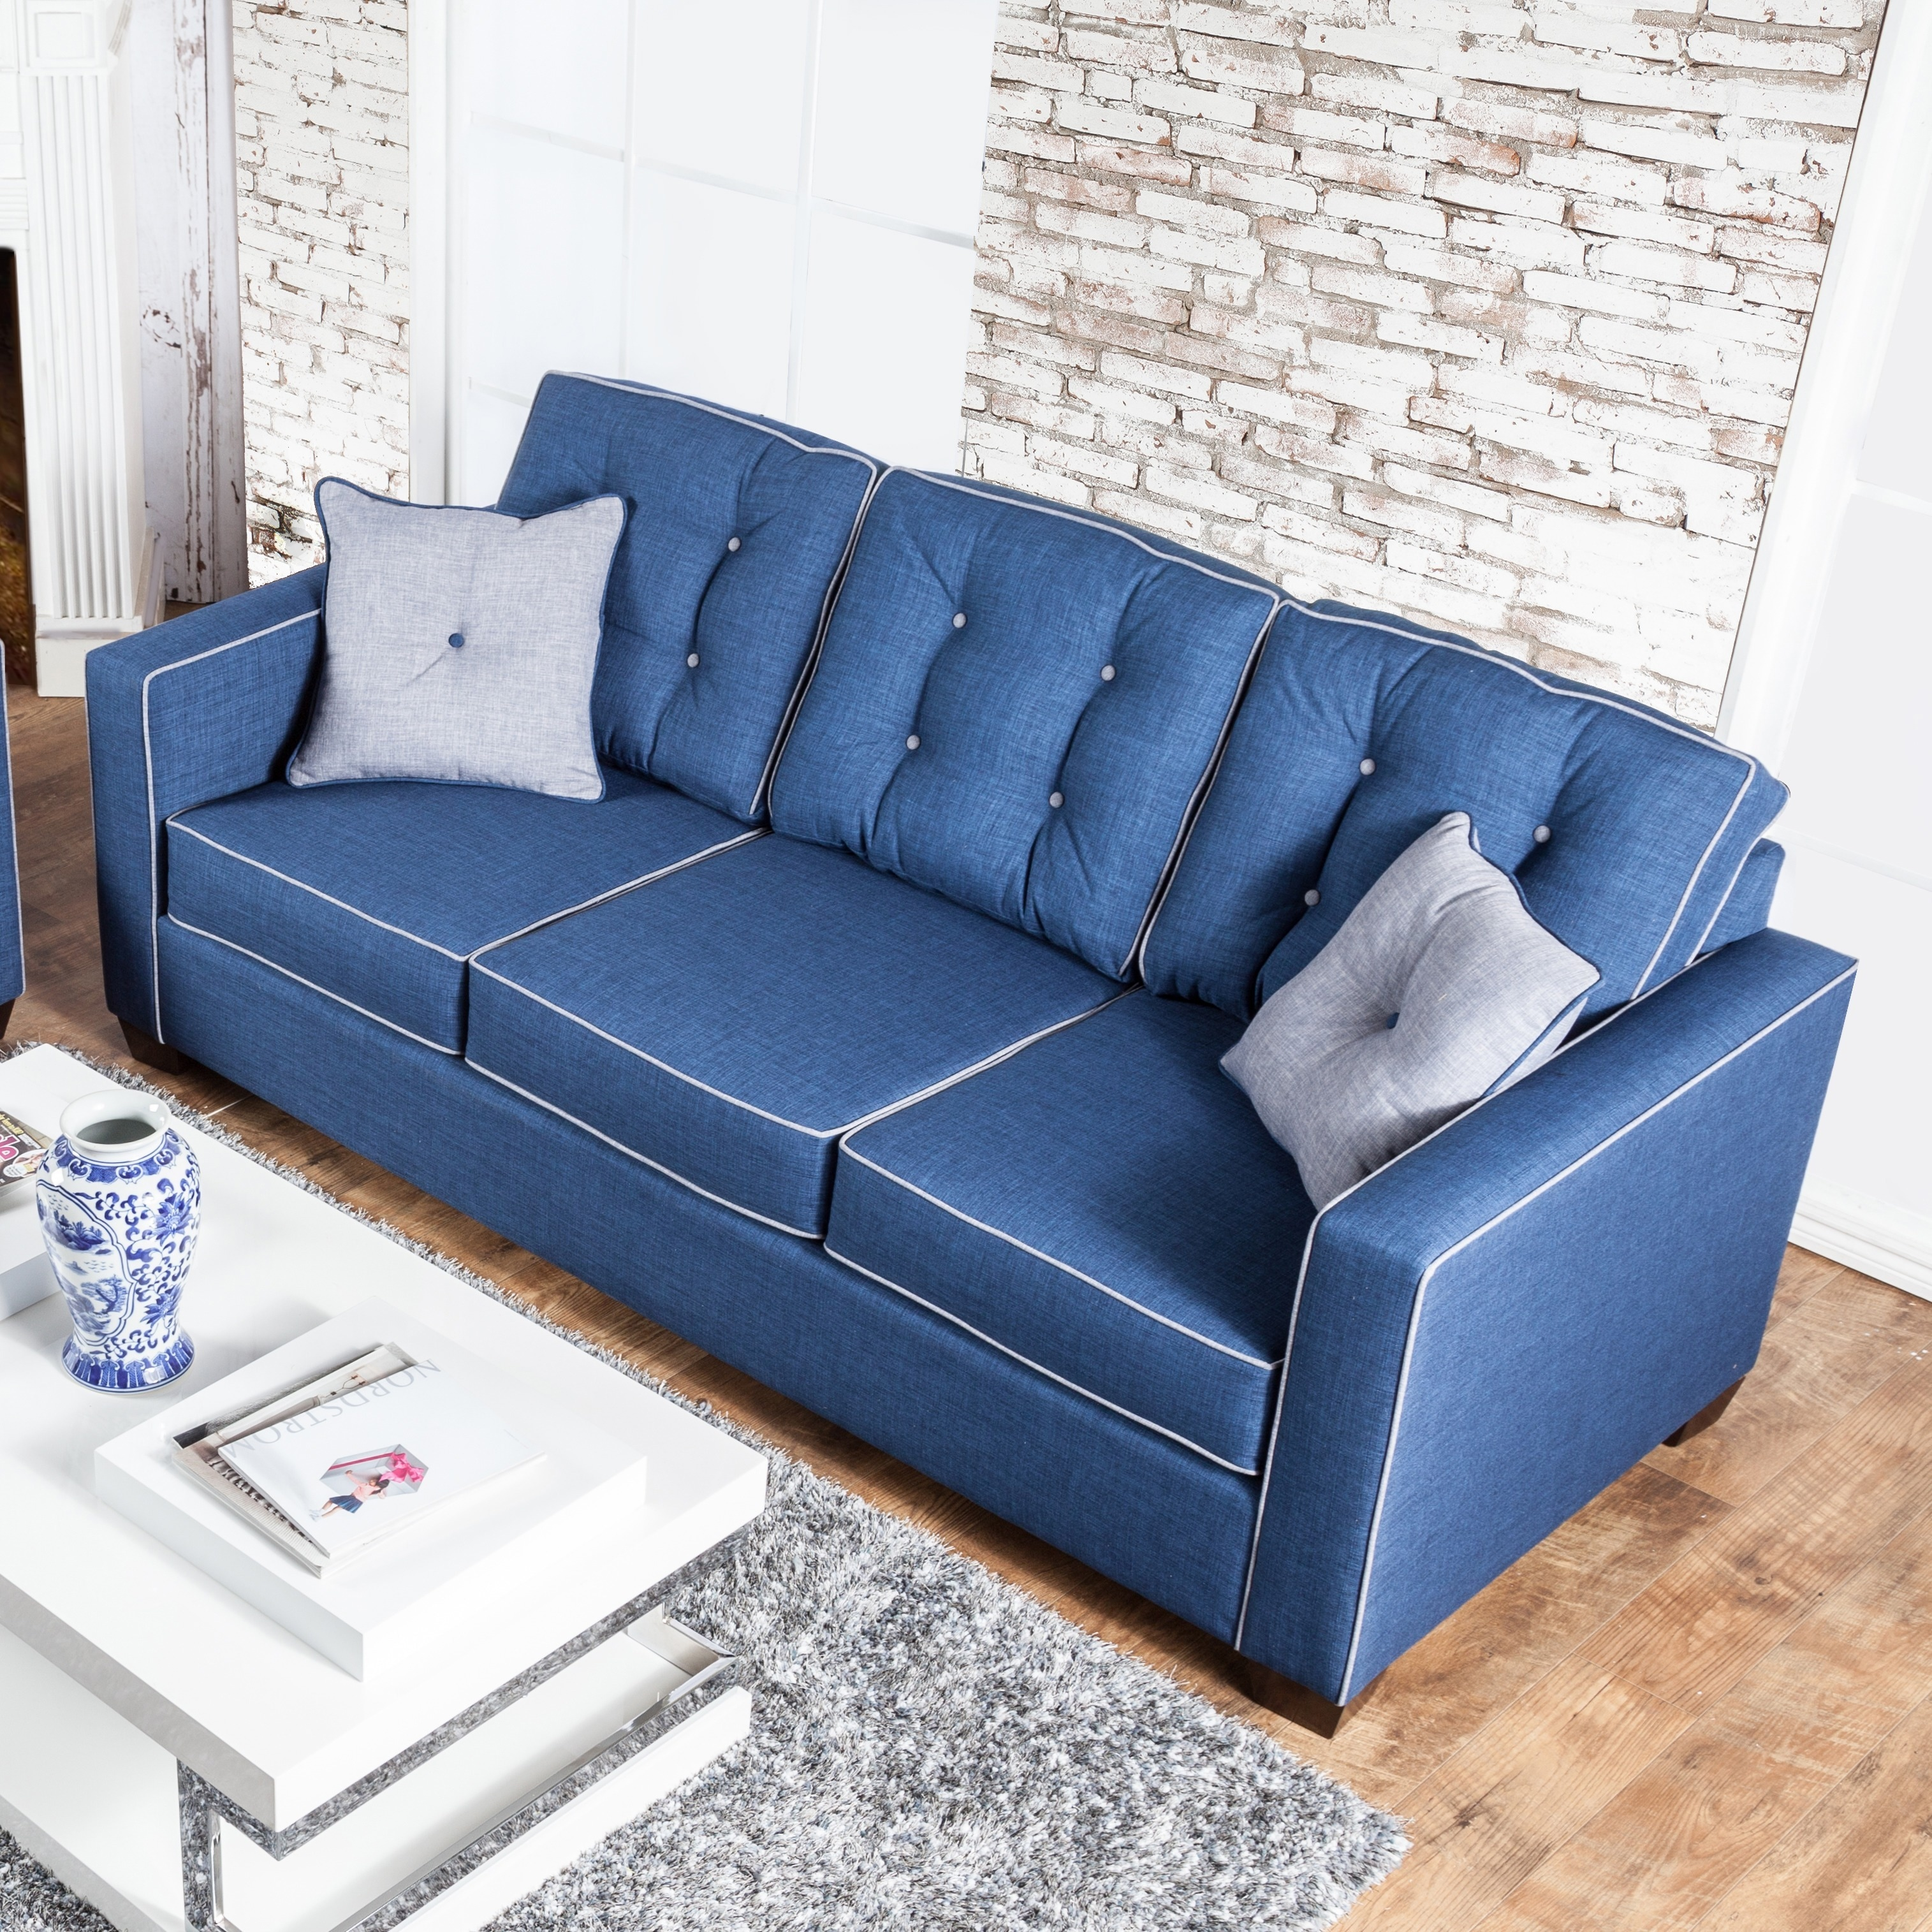 Blue Furniture of America Sofas Couches & Loveseats For Less